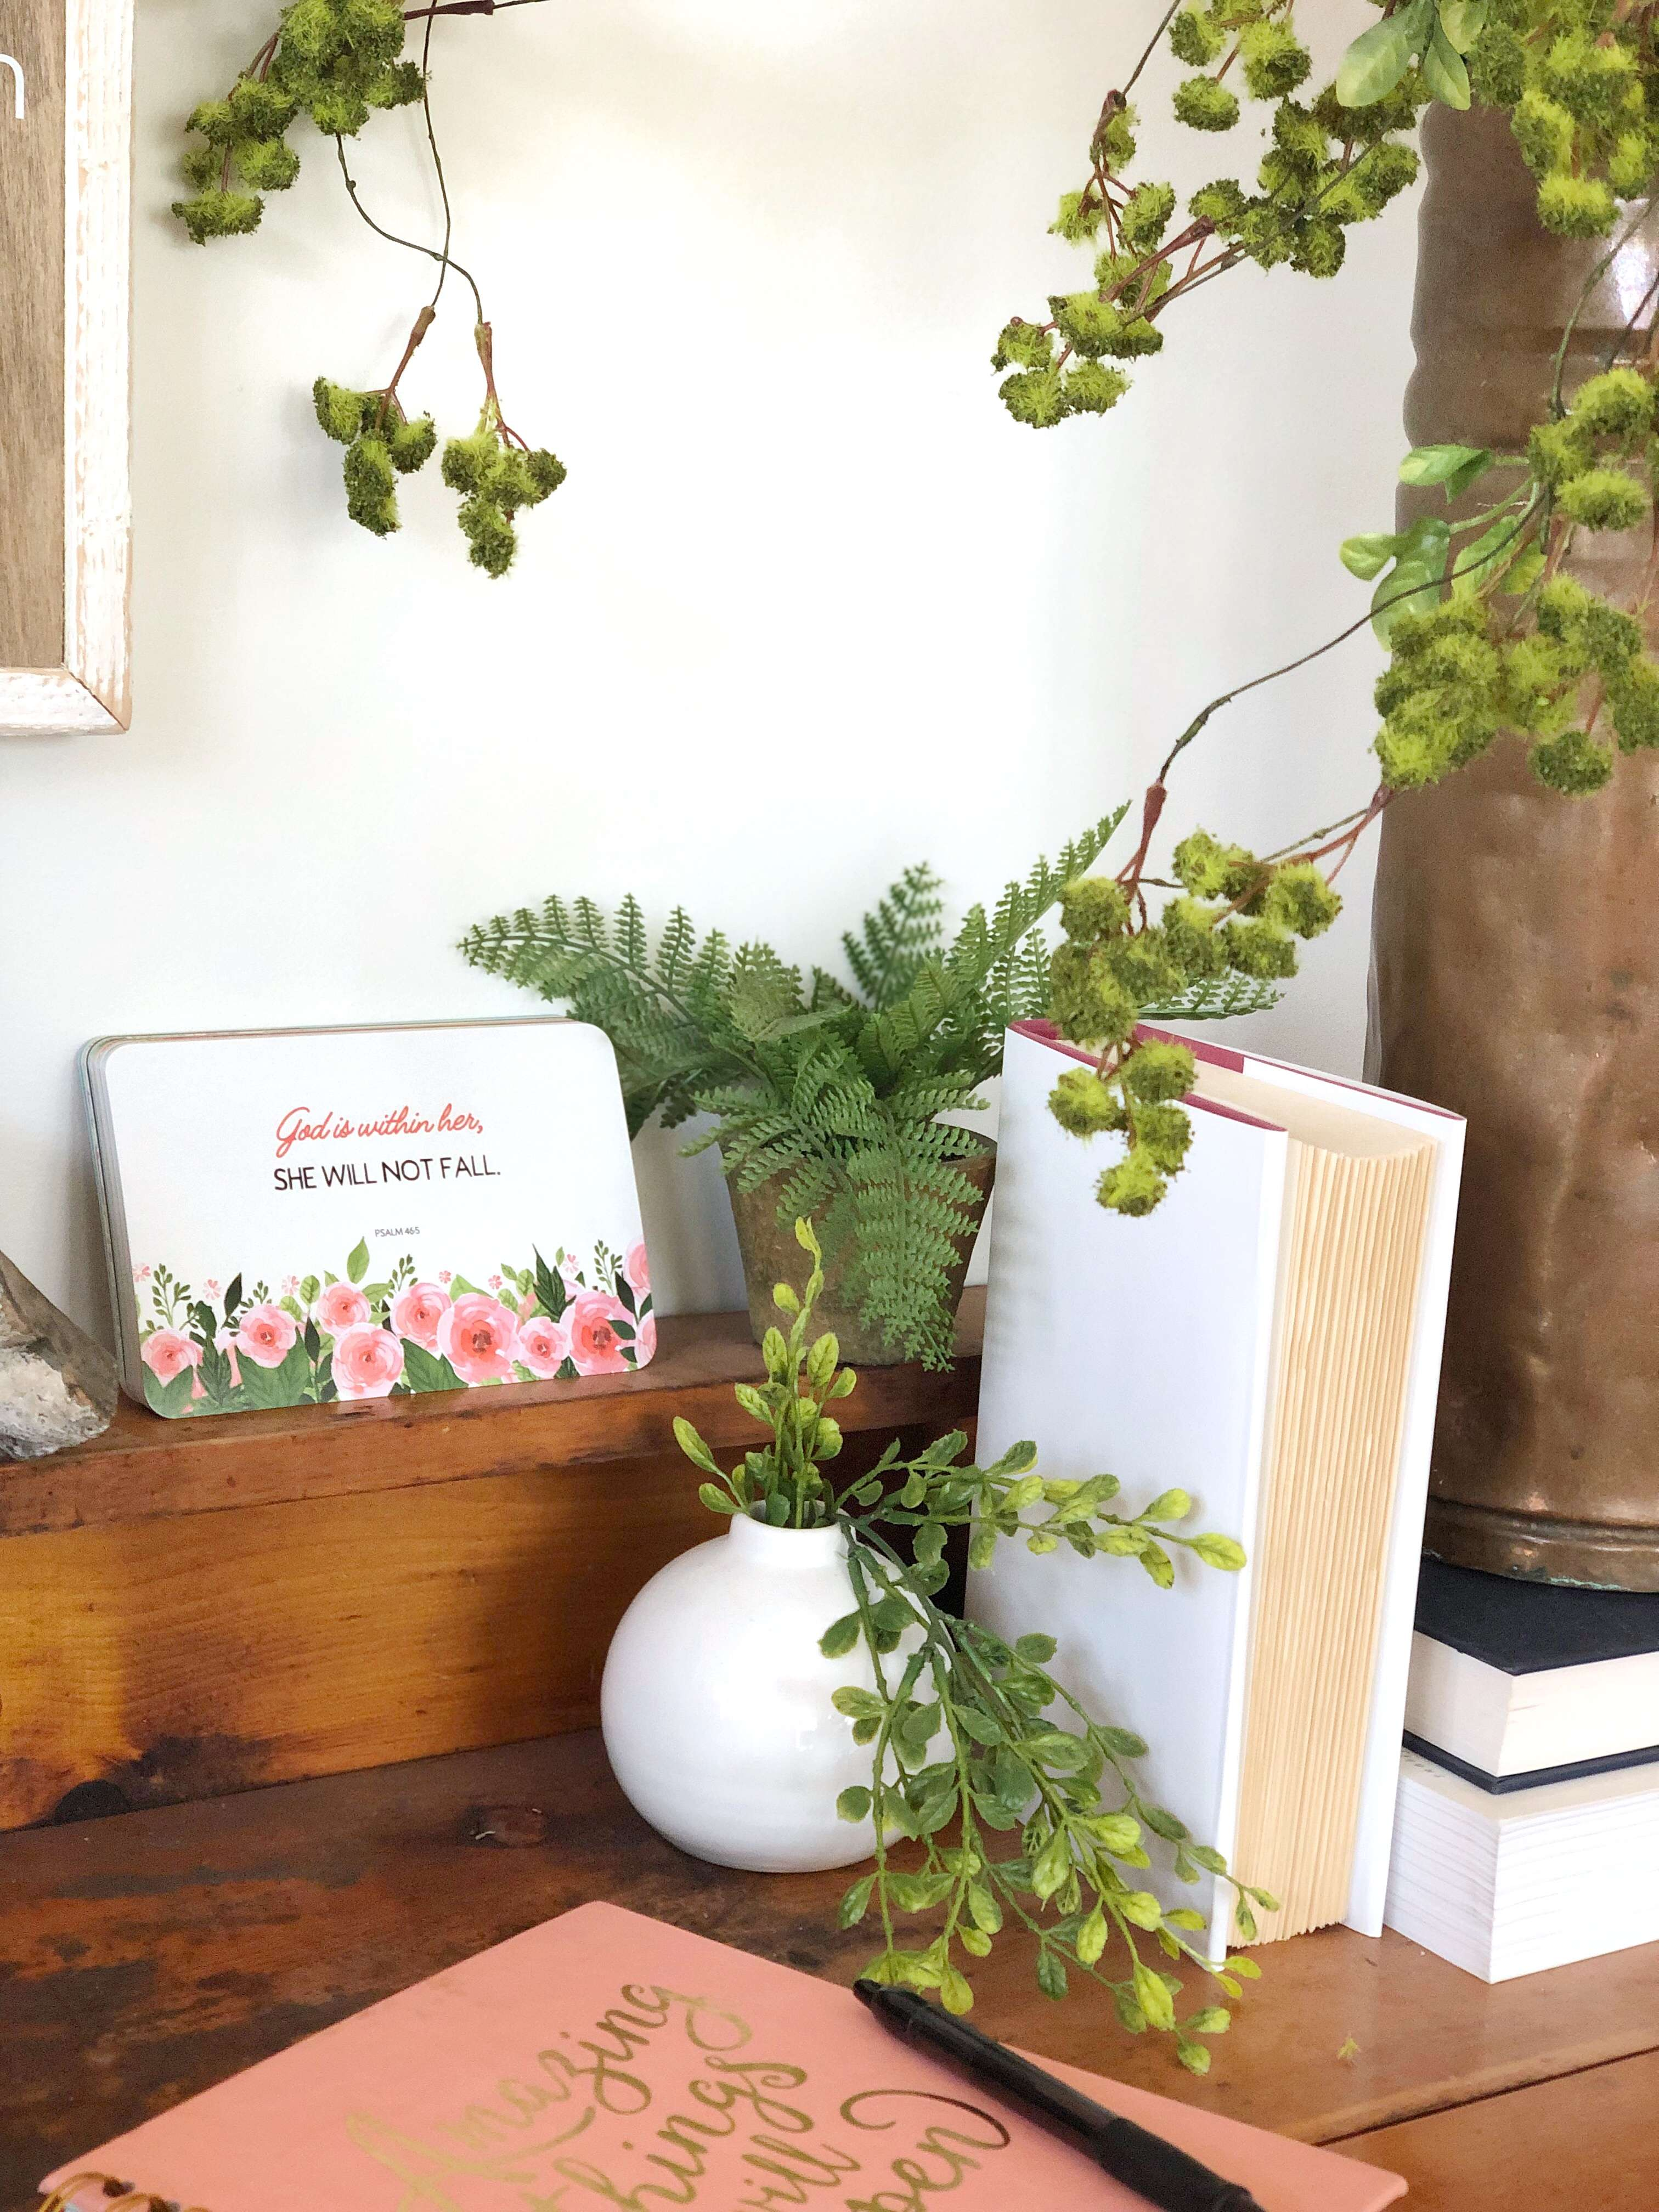 Are you looking for Mother's Day gifts for your wife, your mom, your grandma, or just a special woman? I'm sharing cute mother's day gift ideas today. #mothersday #giftguide #fromhousetohaven